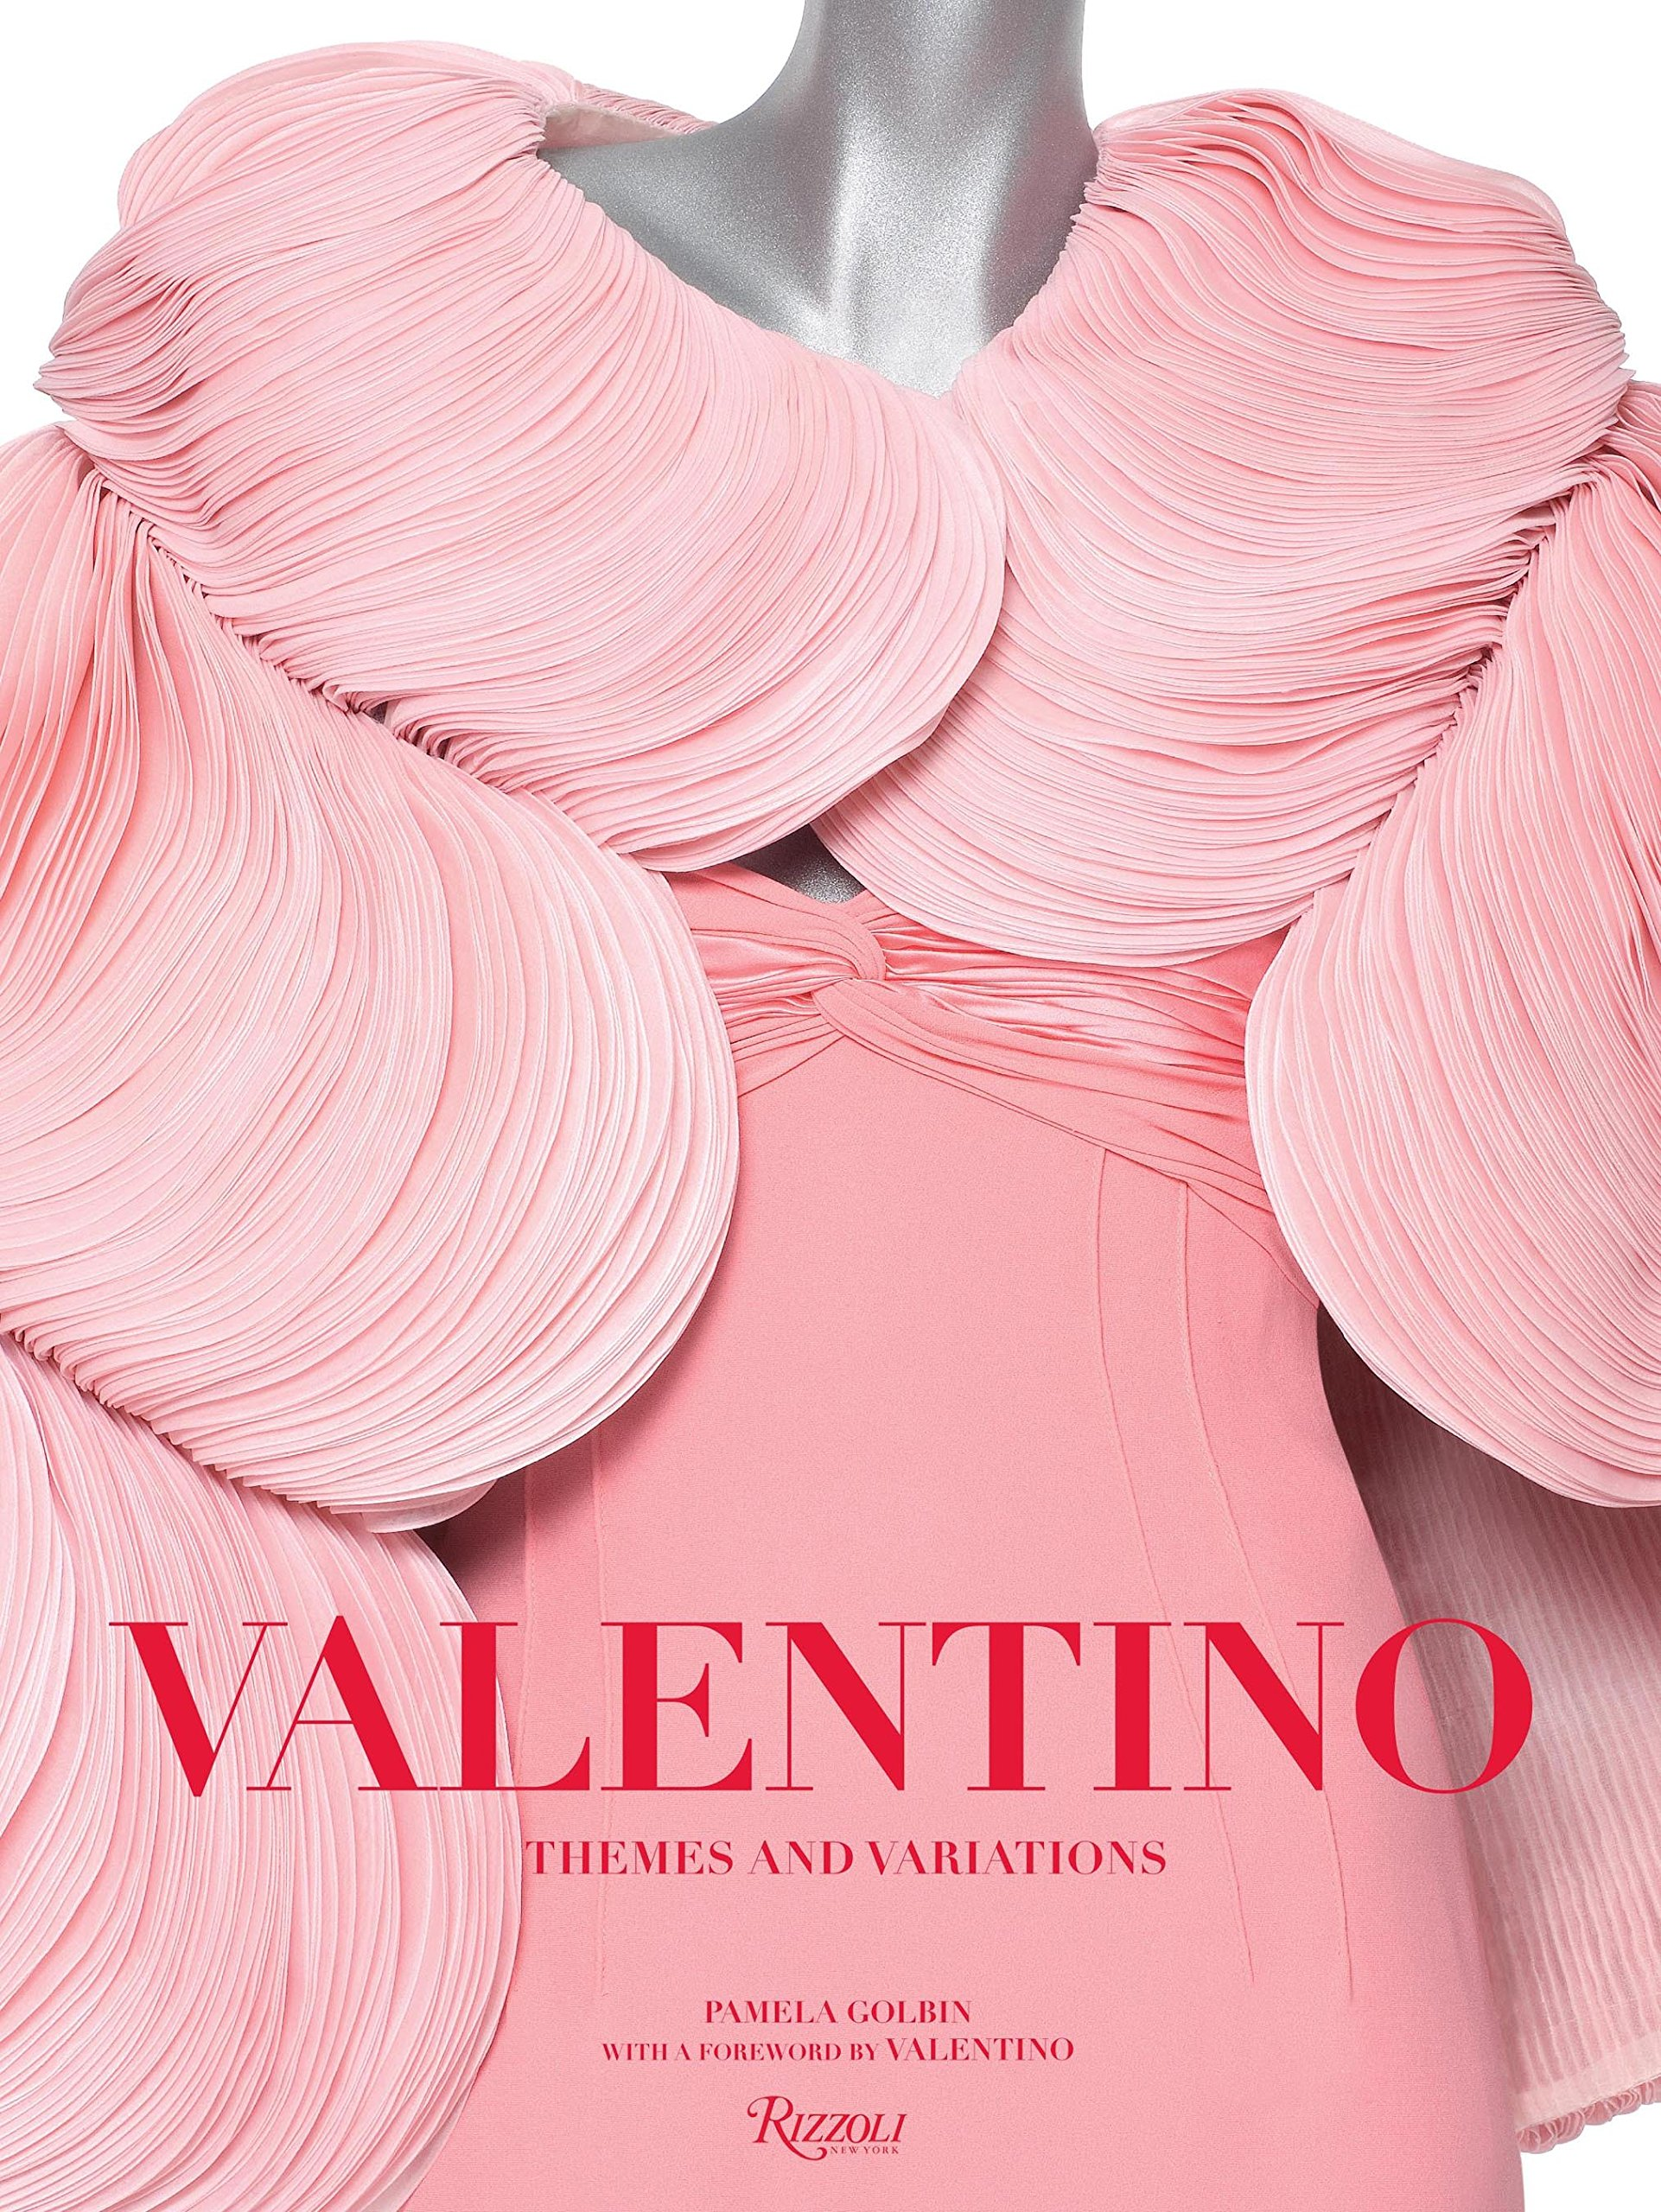 Valentino: Themes and Variations by Rizzoli